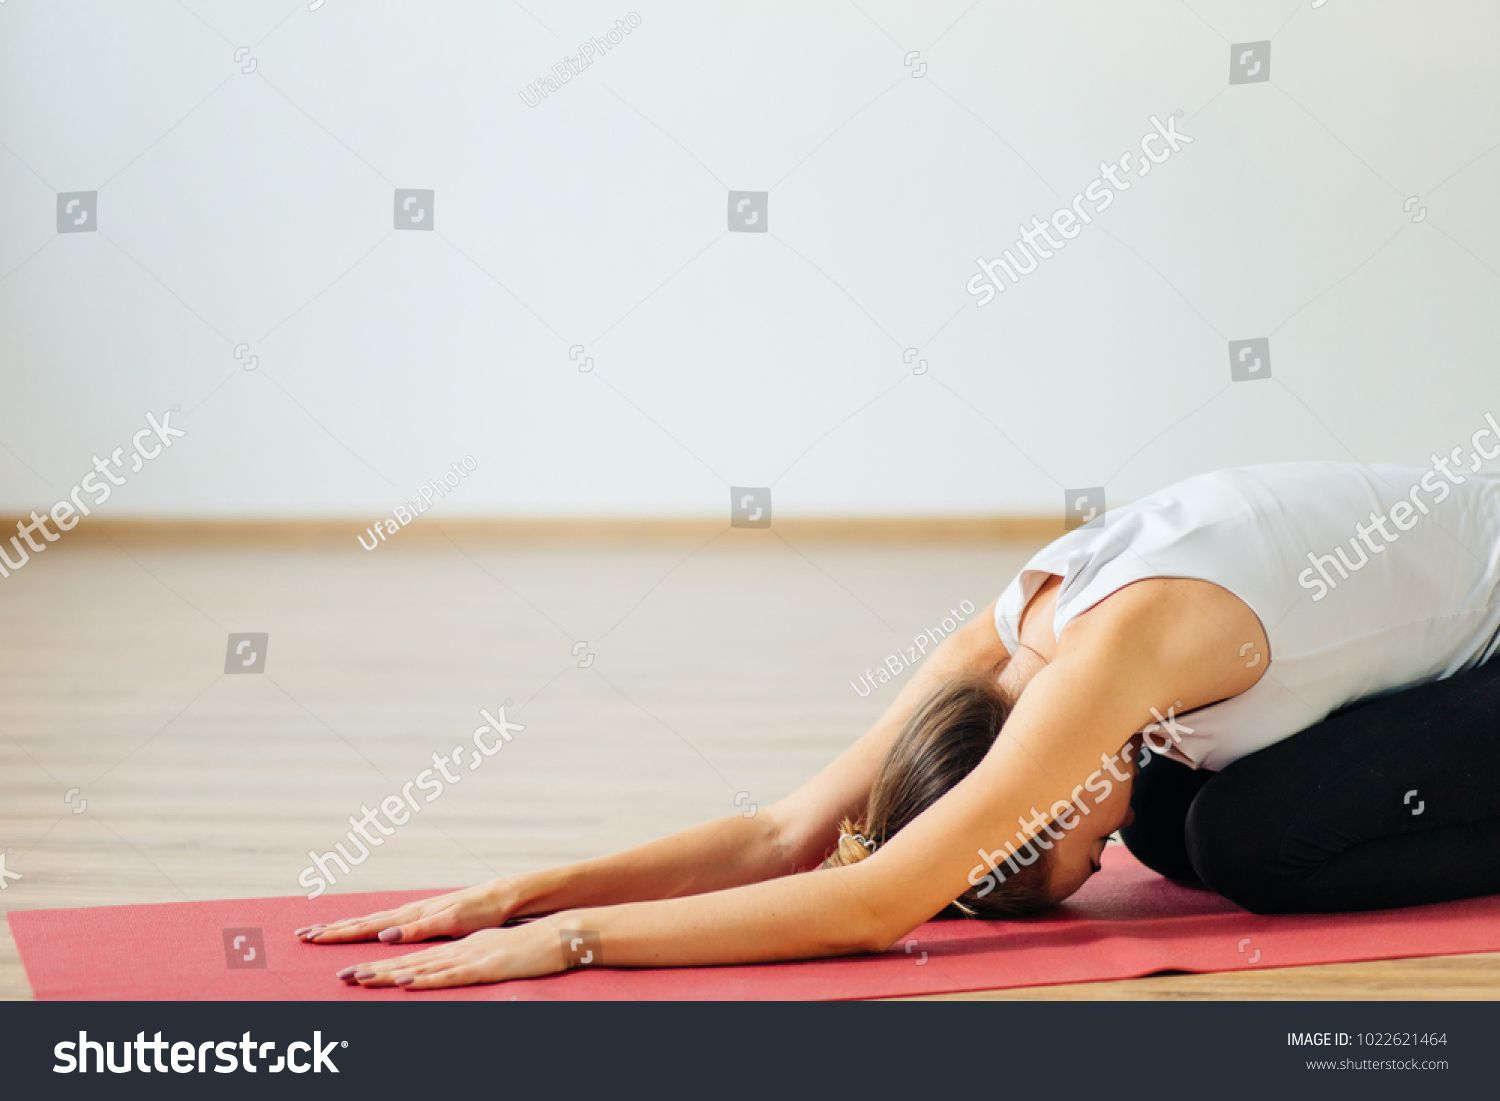 Woman Doing The Child S Pose On Red Yoga Mat Balasana Ad Ad Pose Child Woman Red In 2020 Sport Hall Kid Poses Photo Editing